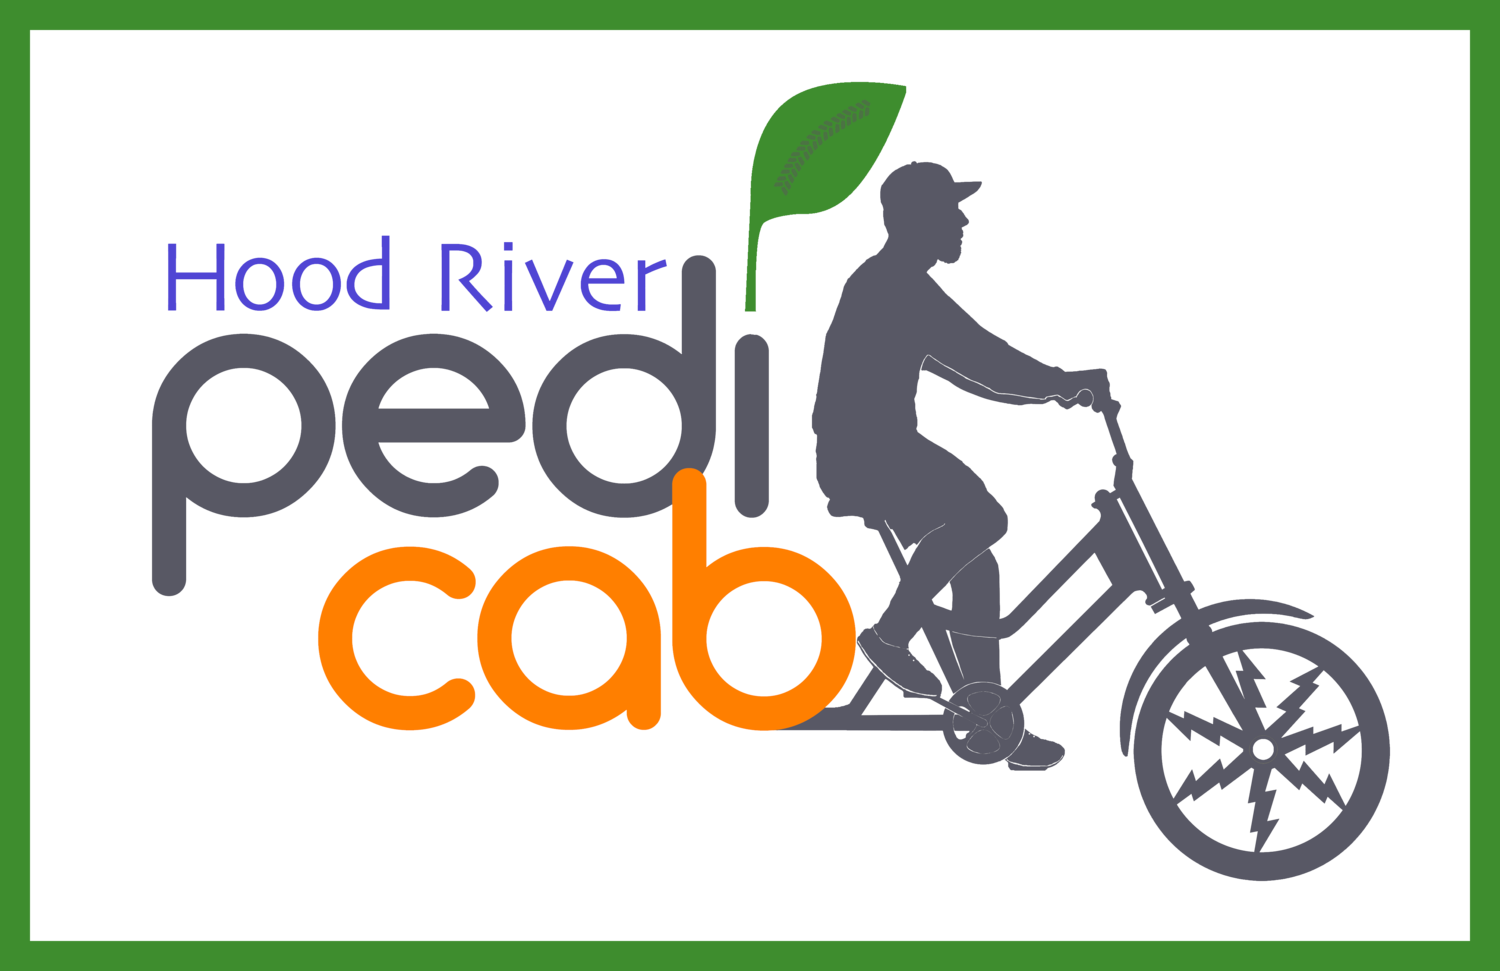 Hood River Pedicab